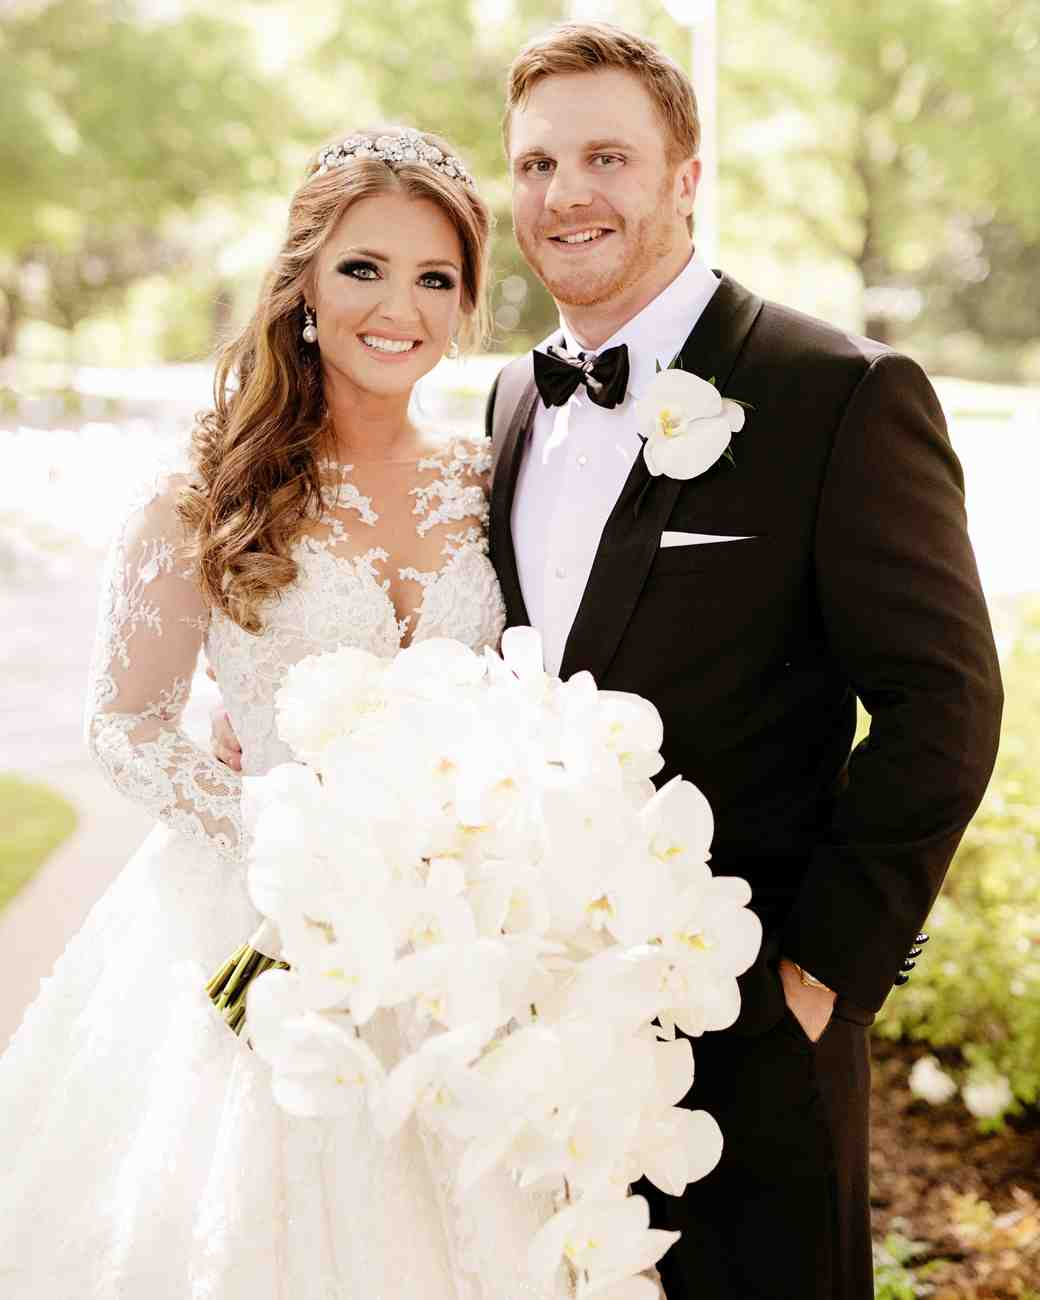 Glamorous all-white orchid wedding bouquet and black tie wedding